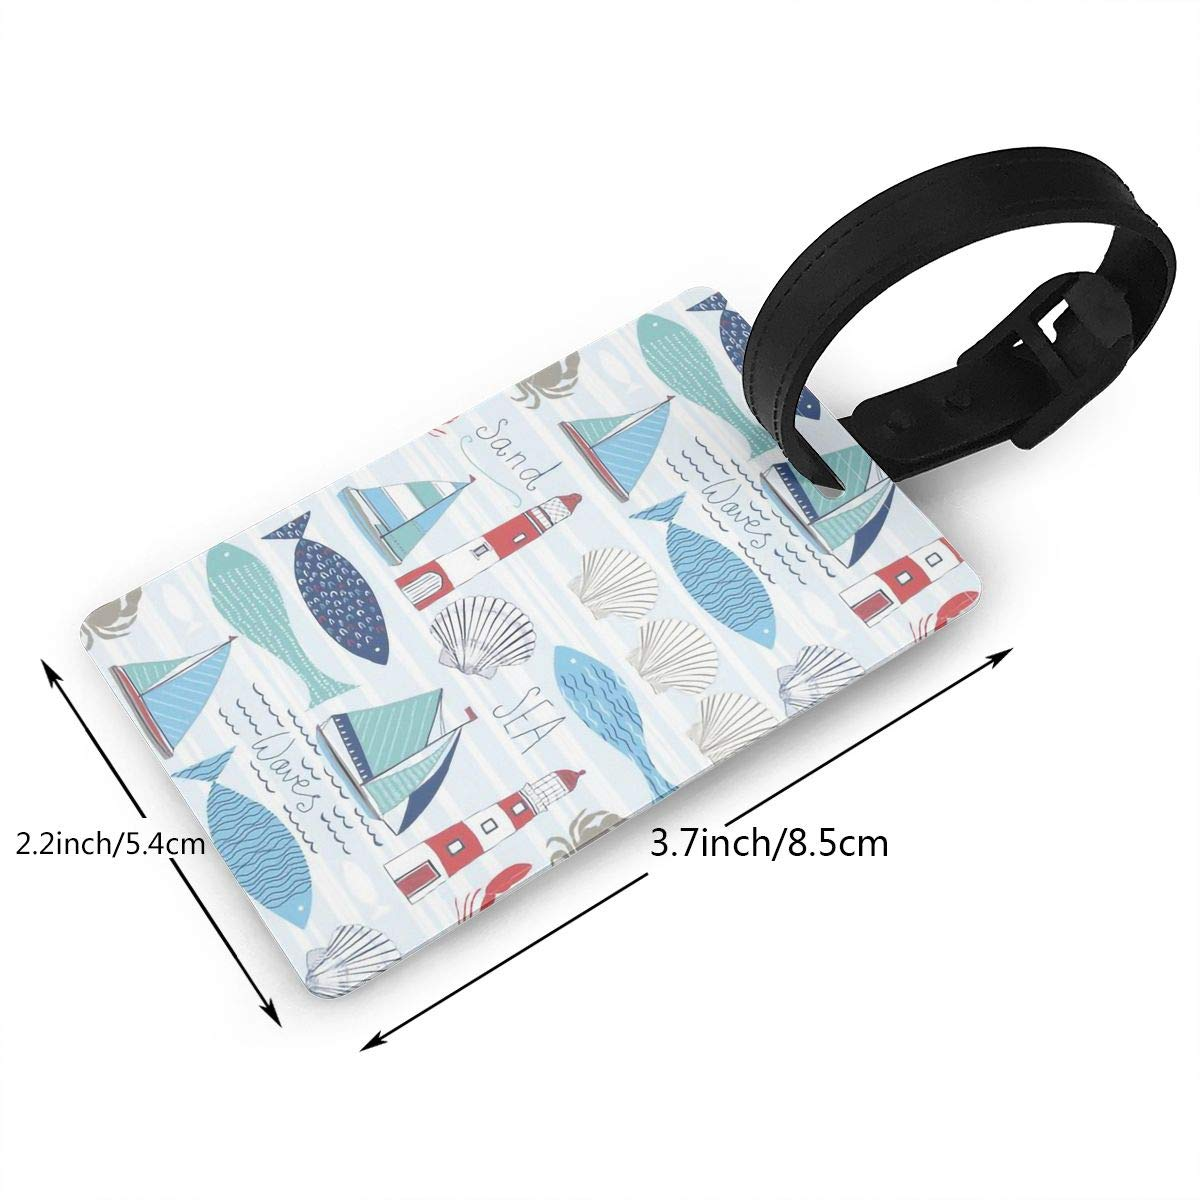 Sailboats Cruise Luggage Tag For Travel Bag Suitcase Accessories 2 Pack Luggage Tags